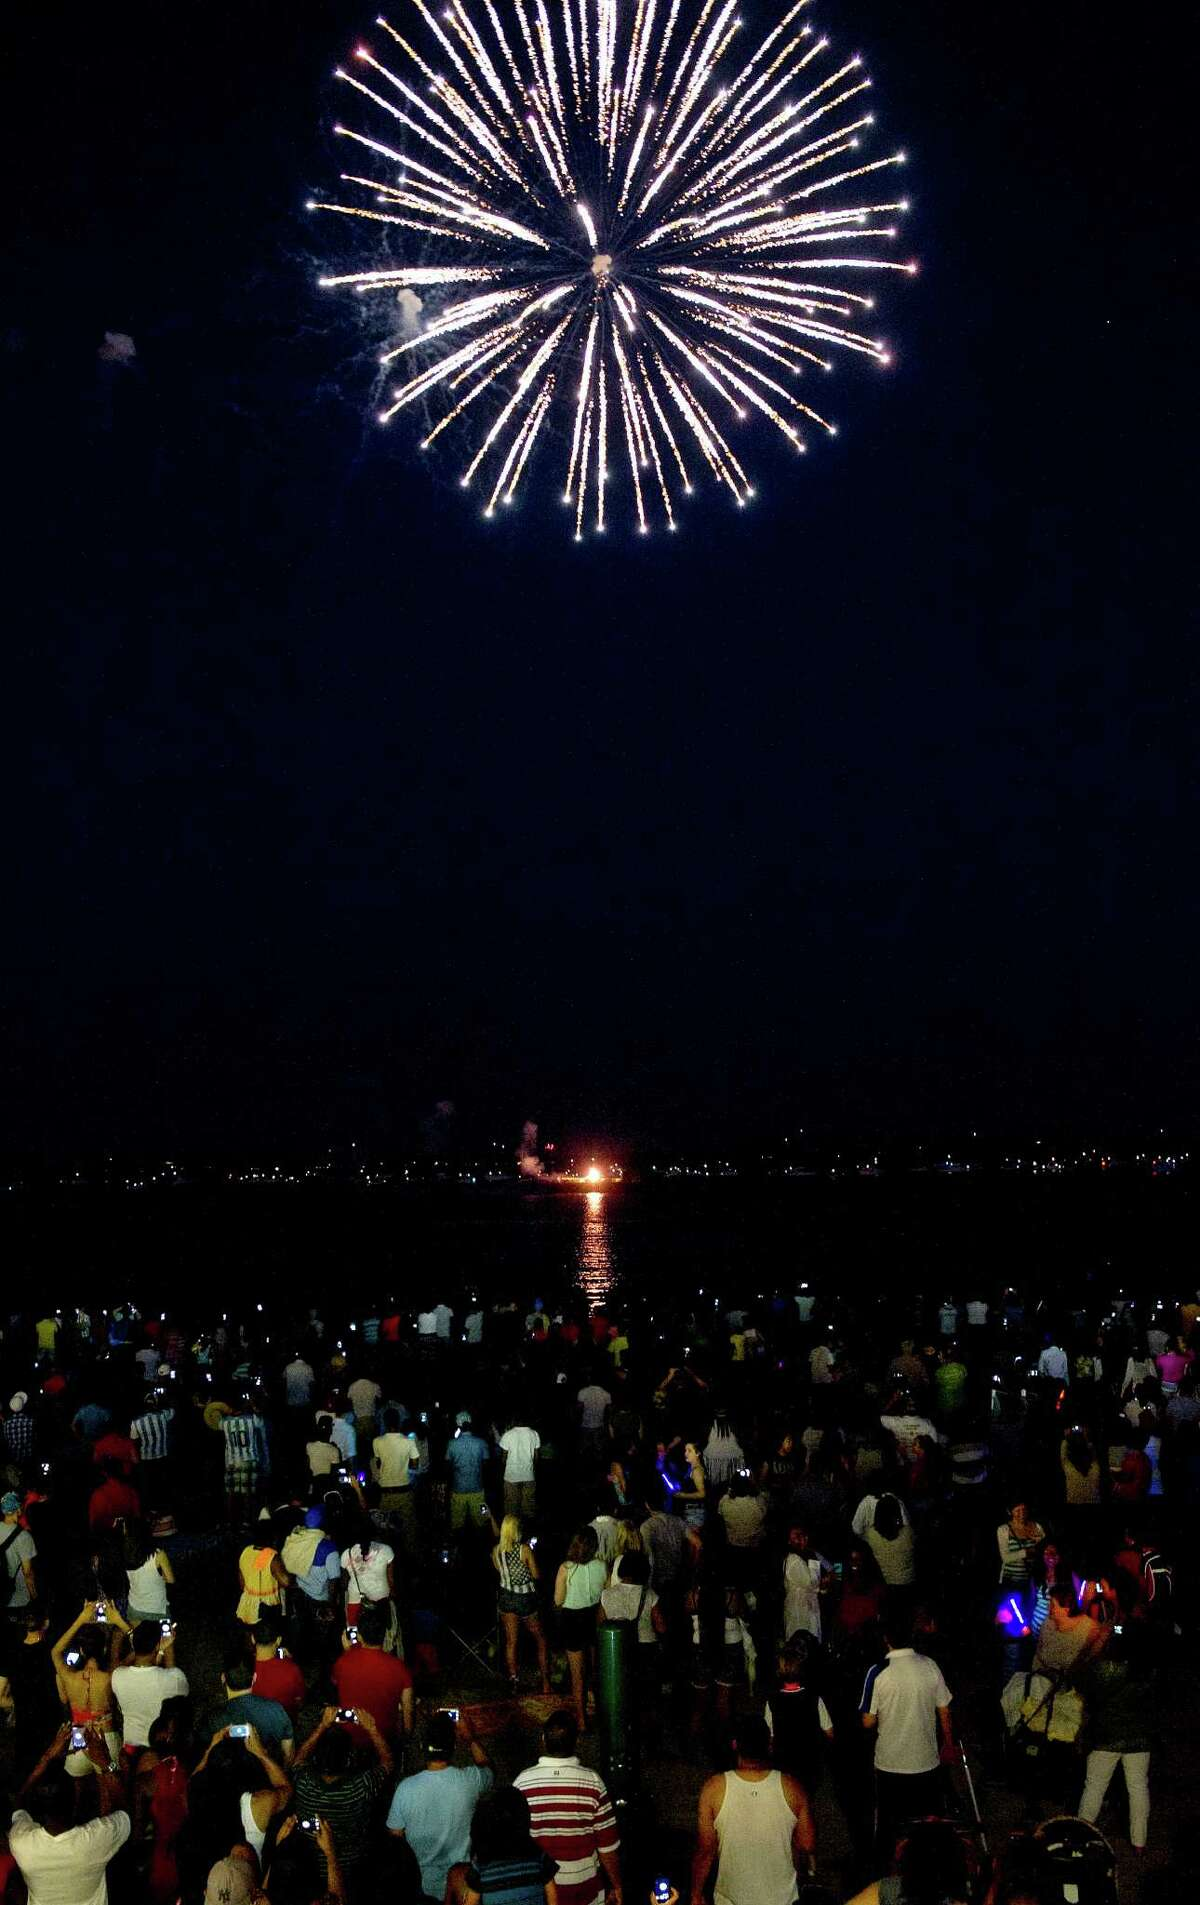 Fireworks light up the sky over Cummings Beach in Stamford, Conn., on Saturday, July 5, 2014.